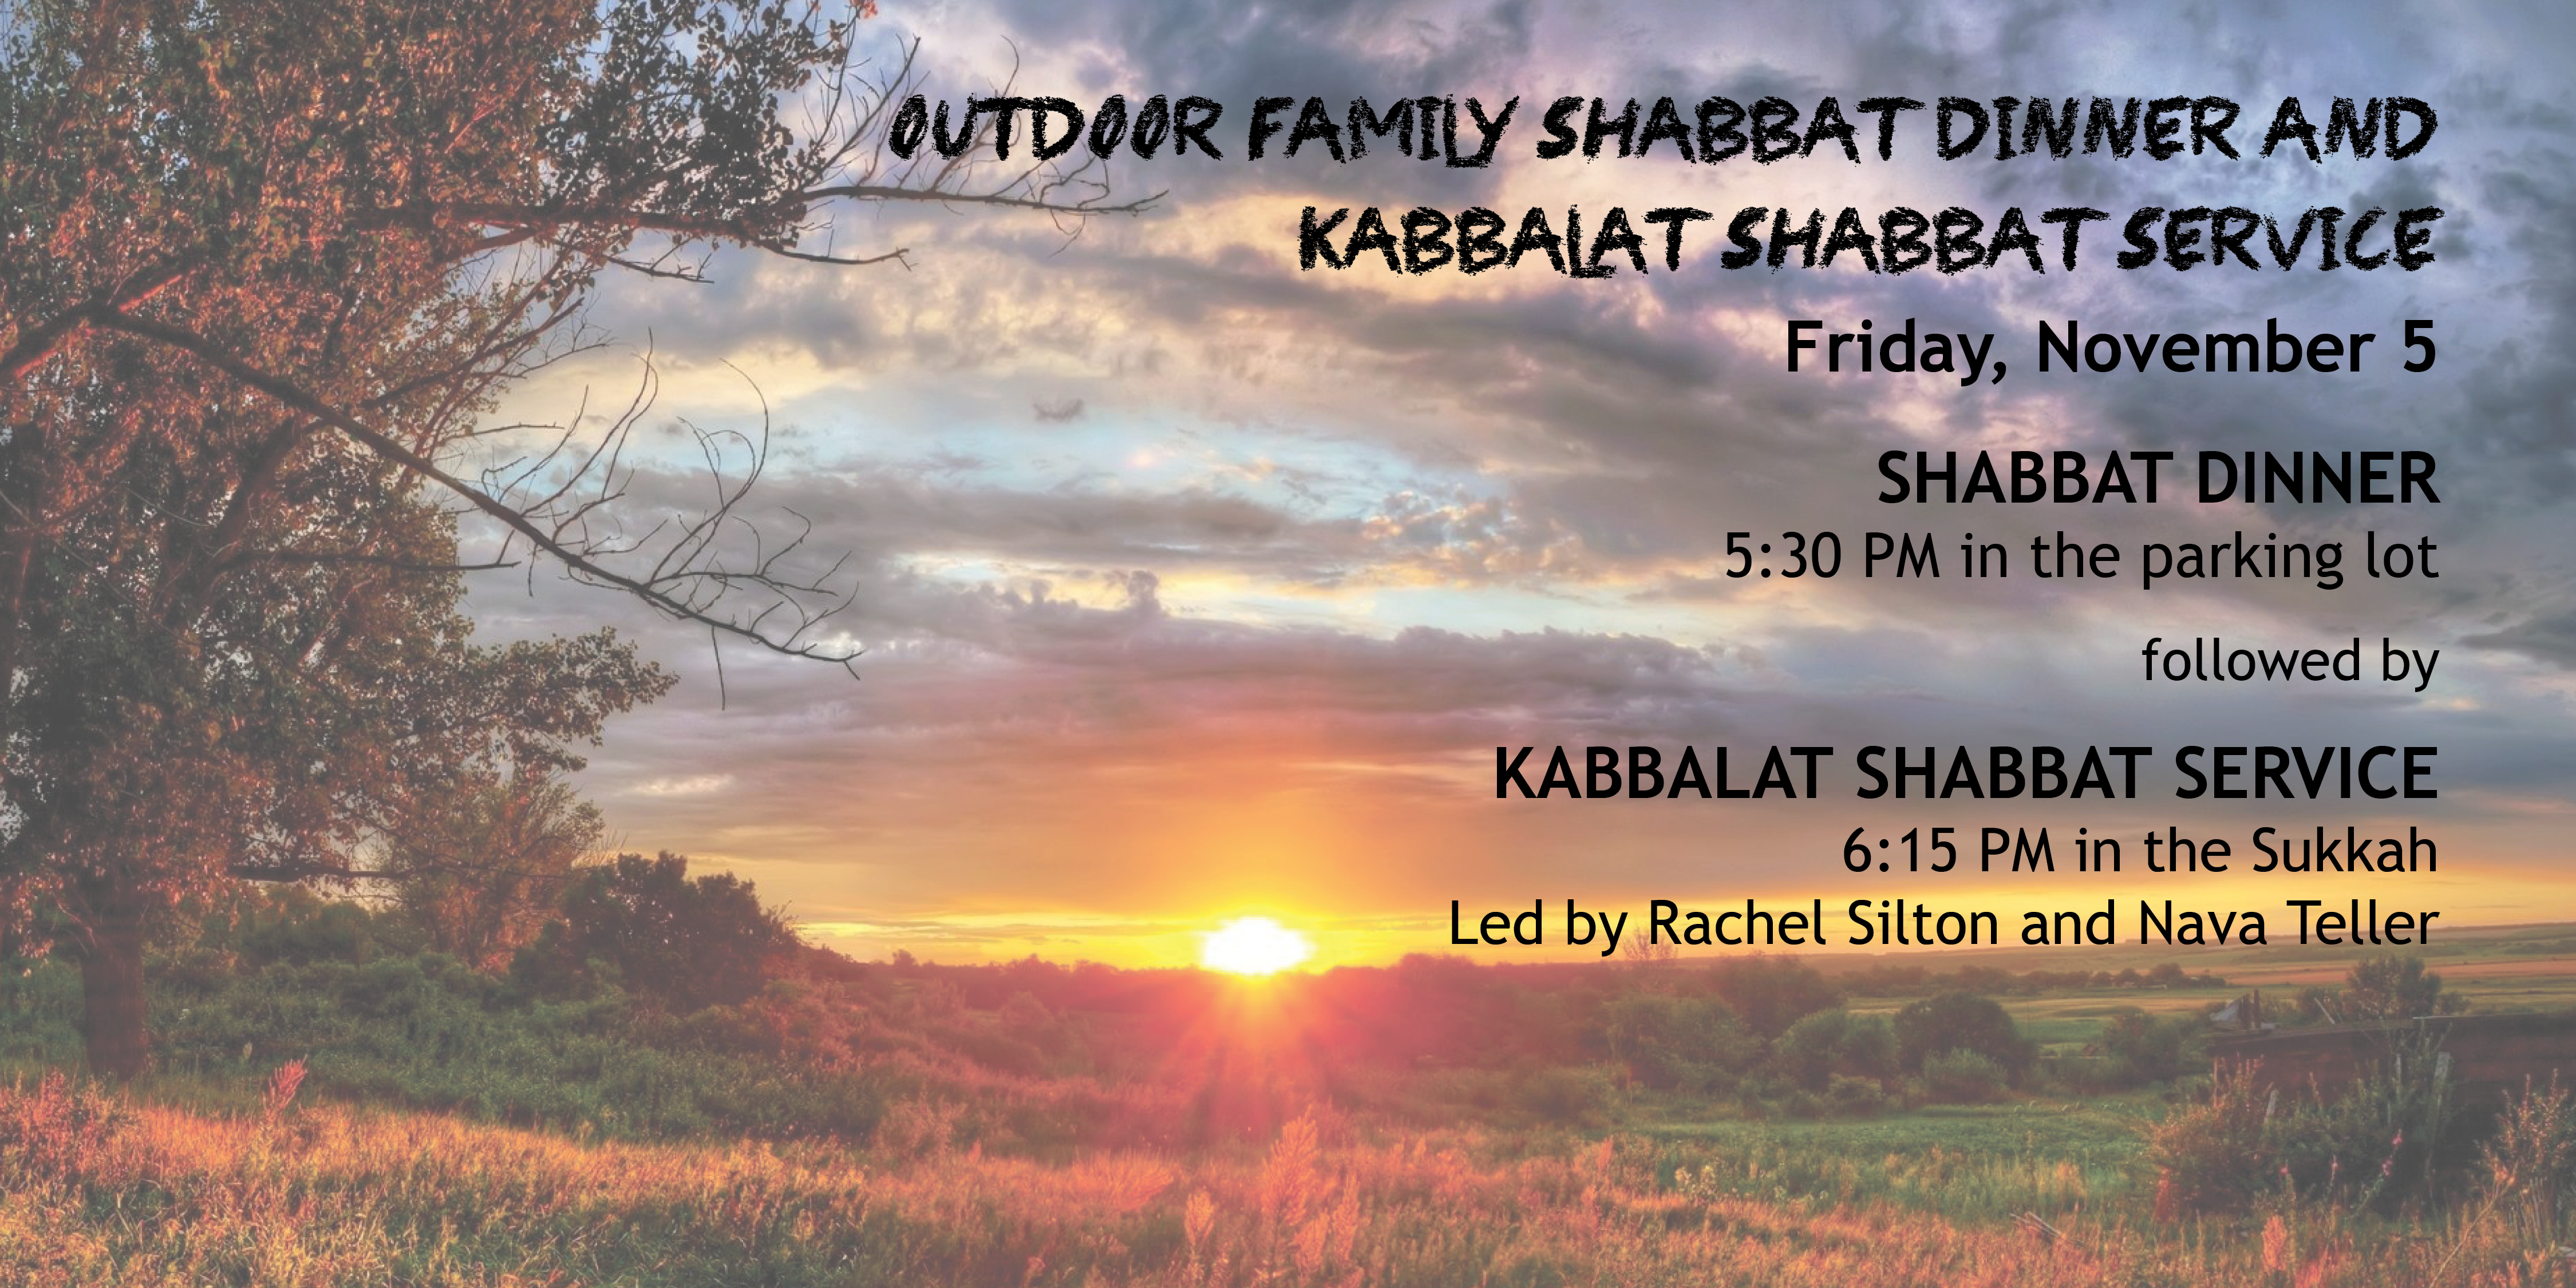 """<a href=""""https://www.brithshalom.org/event/family-dinner-and-kabbalat-shabbat-friday-evening-service-.html""""                                     target="""""""">                                                                 <span class=""""slider_title"""">                                     Friday, November 5th!                                </span>                                                                 </a>                                                                                                                                                                                       <span class=""""slider_description"""">Outdoor Family Shabbat Dinner and Kabbalat Shabbat Service</span>                                                                                     <a href=""""https://www.brithshalom.org/event/family-dinner-and-kabbalat-shabbat-friday-evening-service-.html"""" class=""""slider_link""""                             target="""""""">                             Click here for more information                            </a>"""